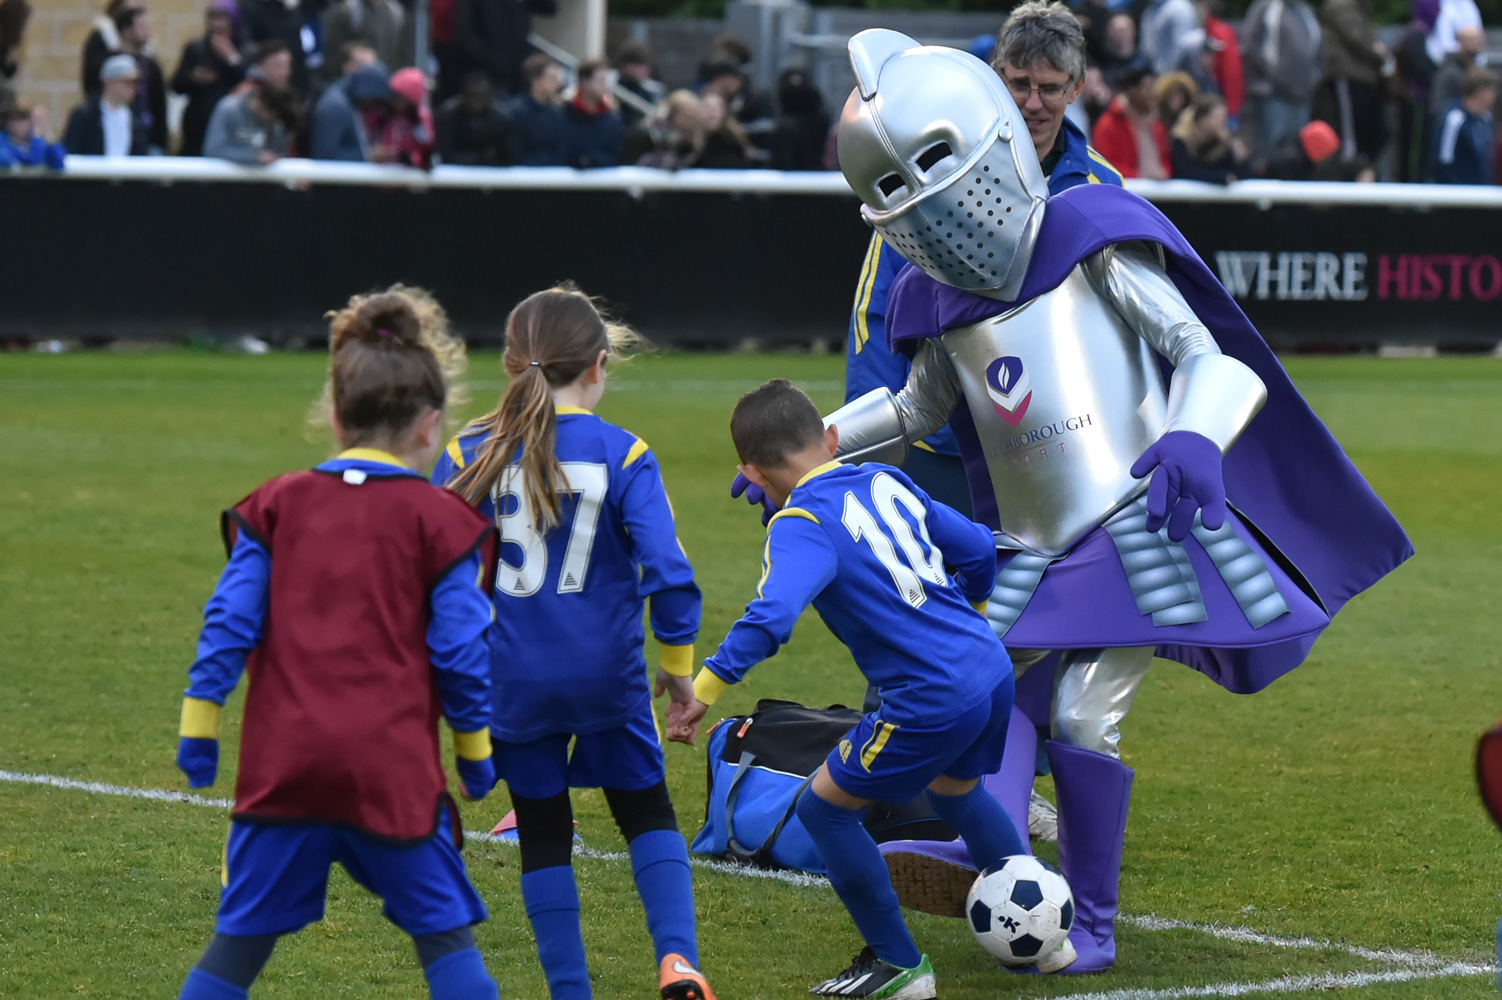 Loughborough University FC mascots